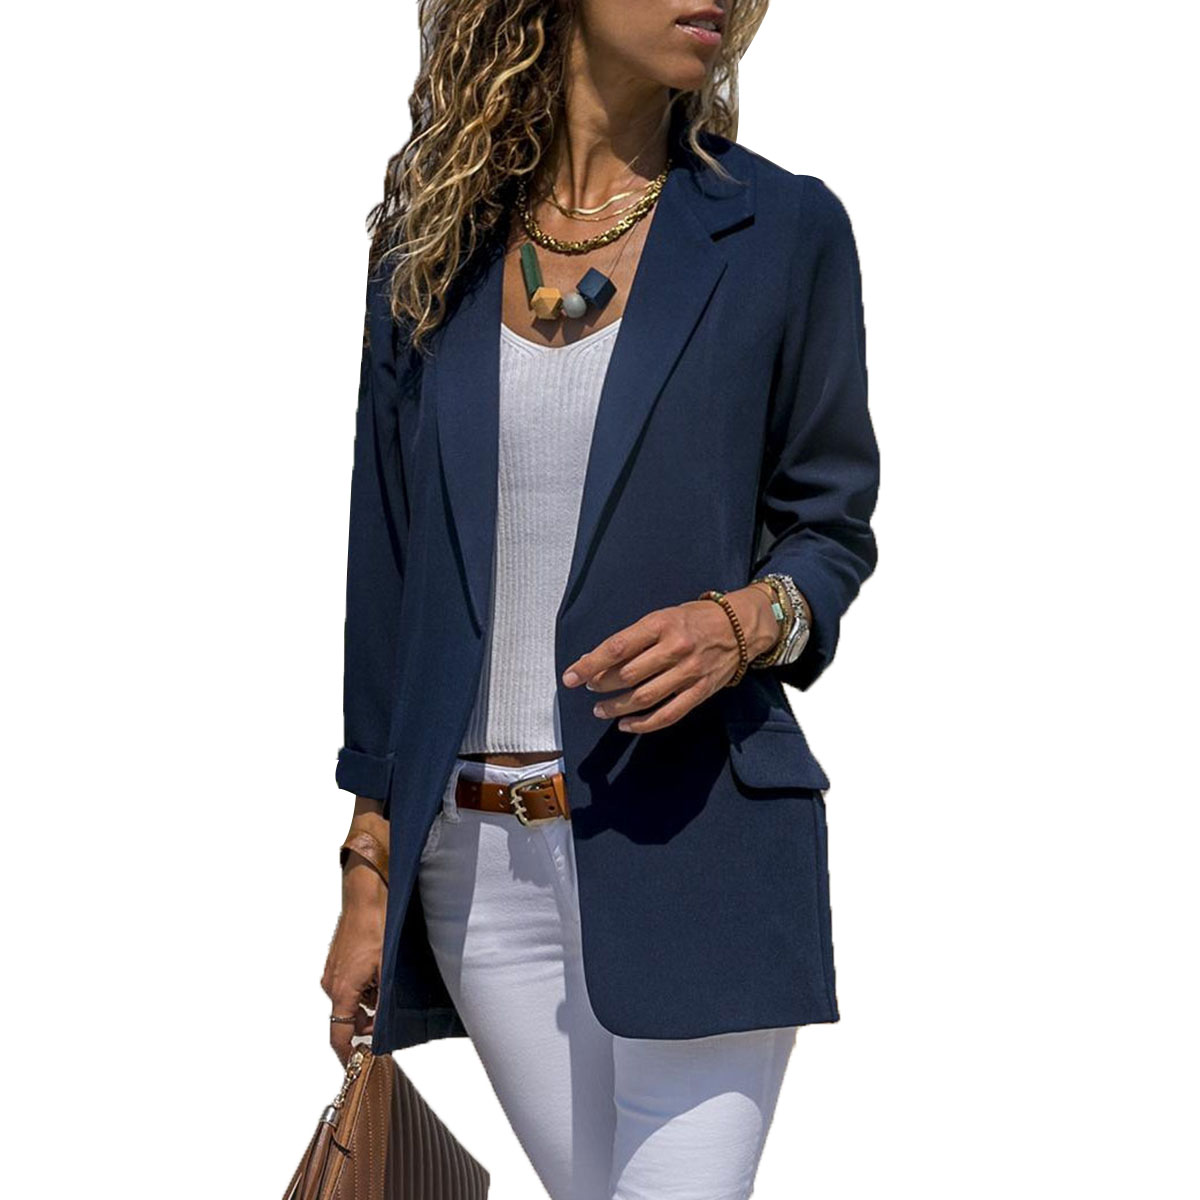 Women's Casual Slim Blazer Jacket Coat Ladies Fashion Party Fitted Top Solid Color OL Blazers